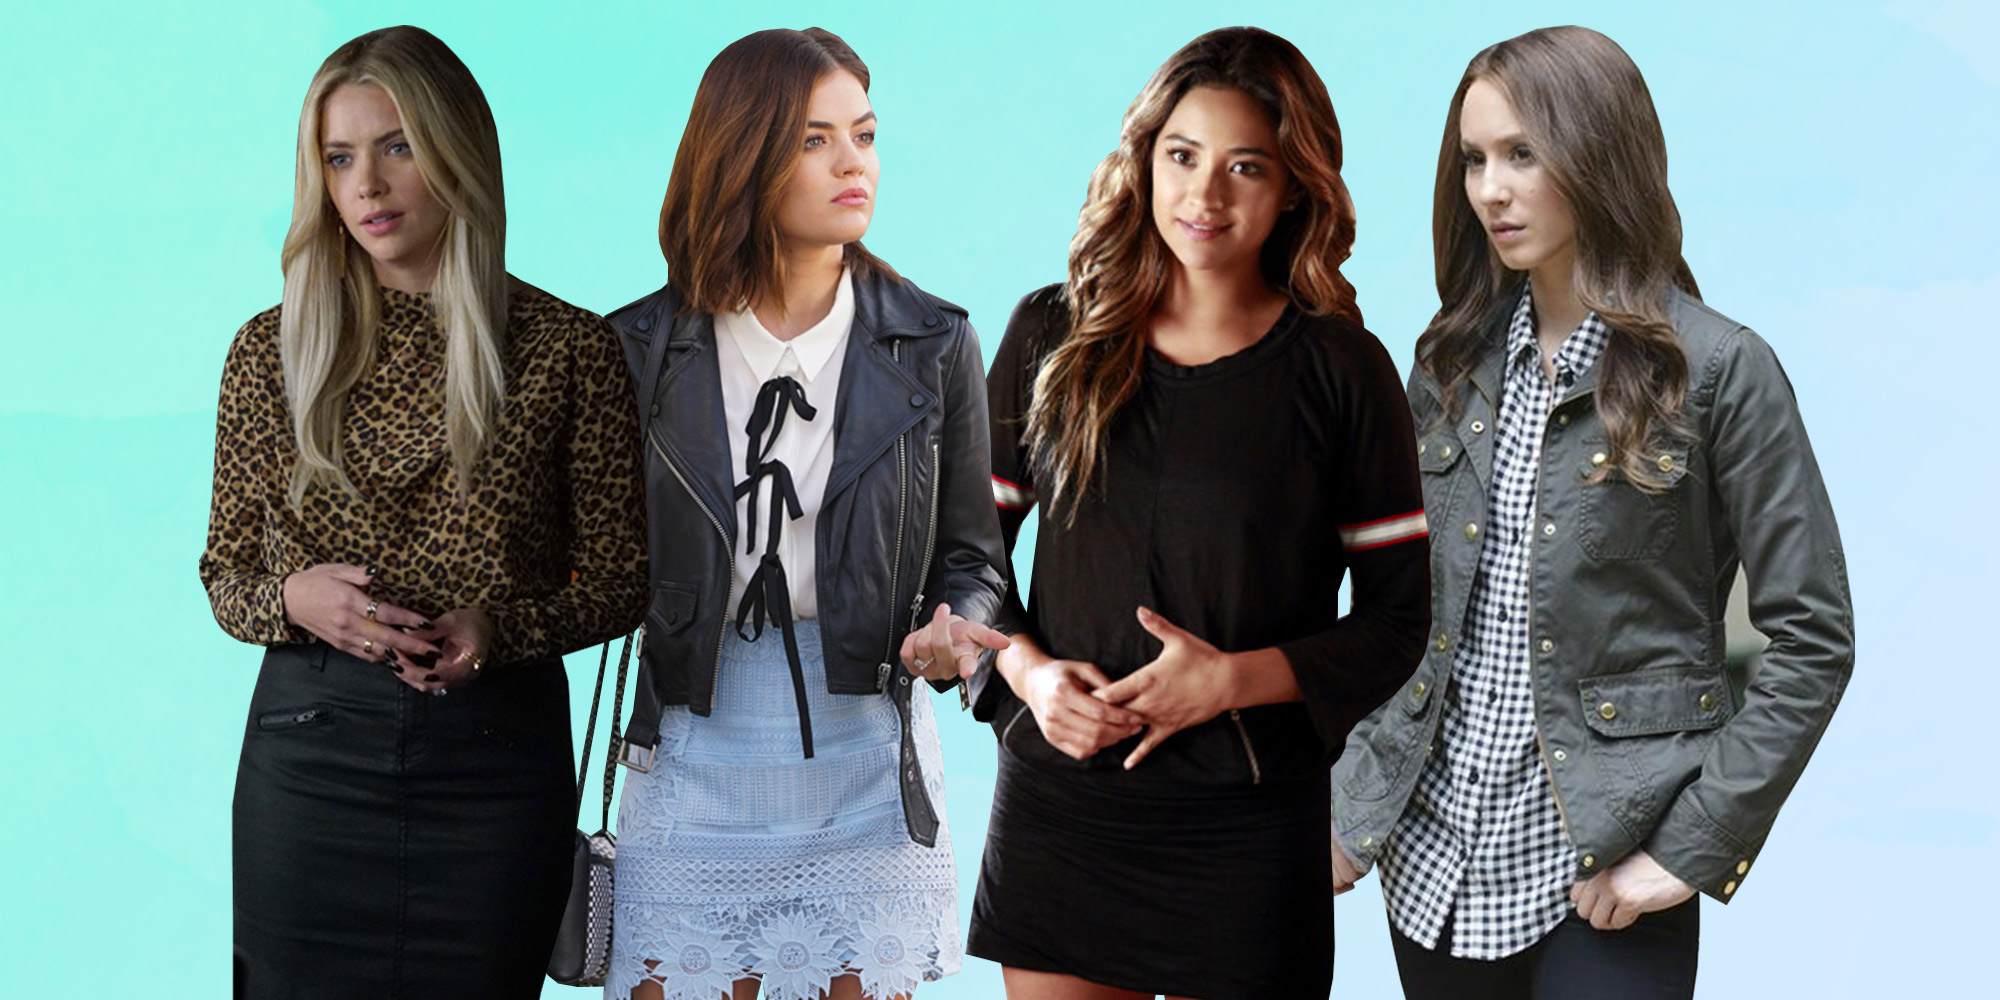 Fashion from pretty little liars 5